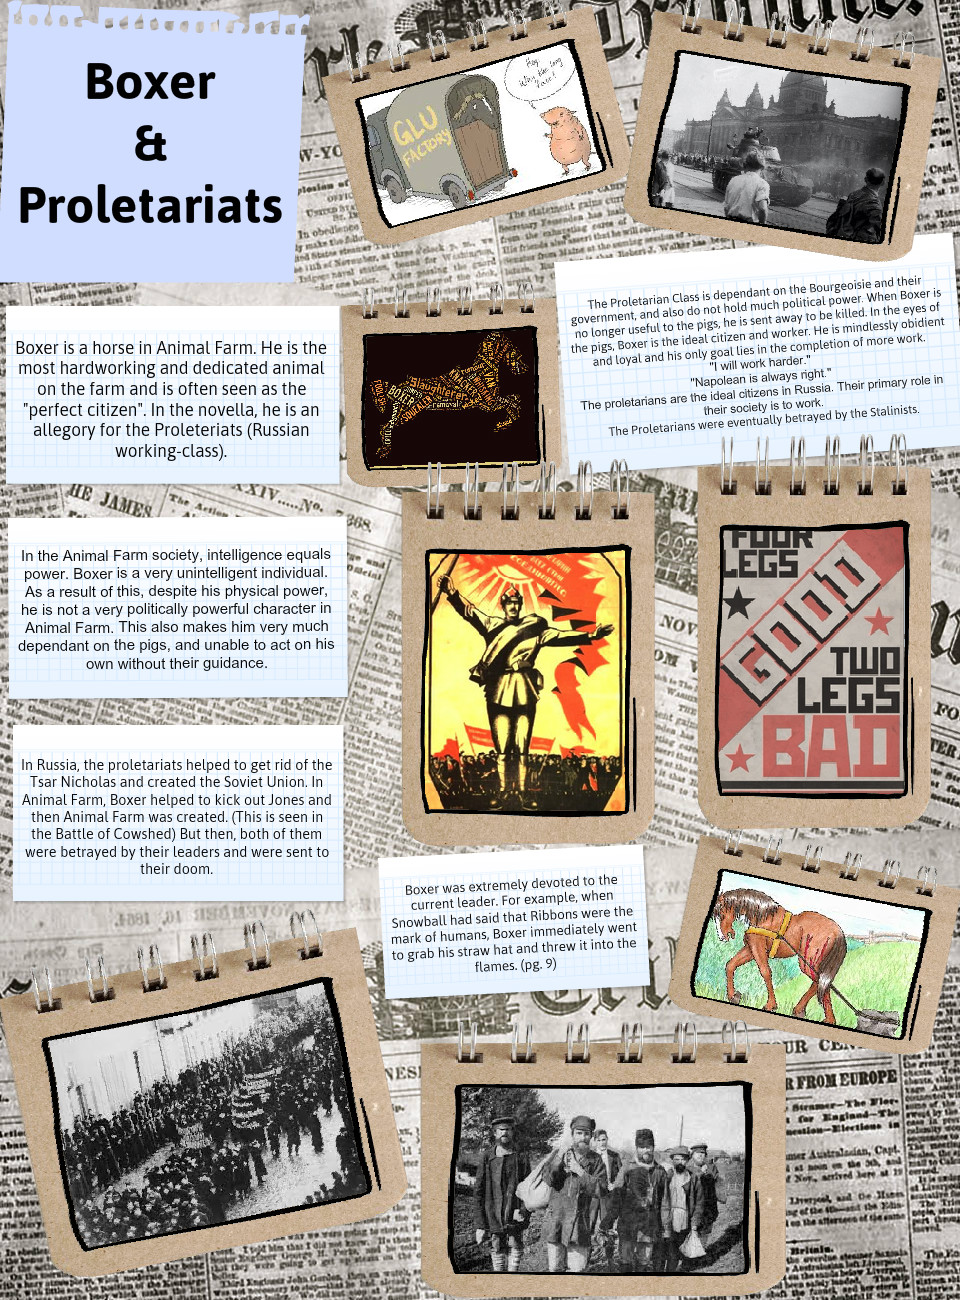 Boxer and Proletariats